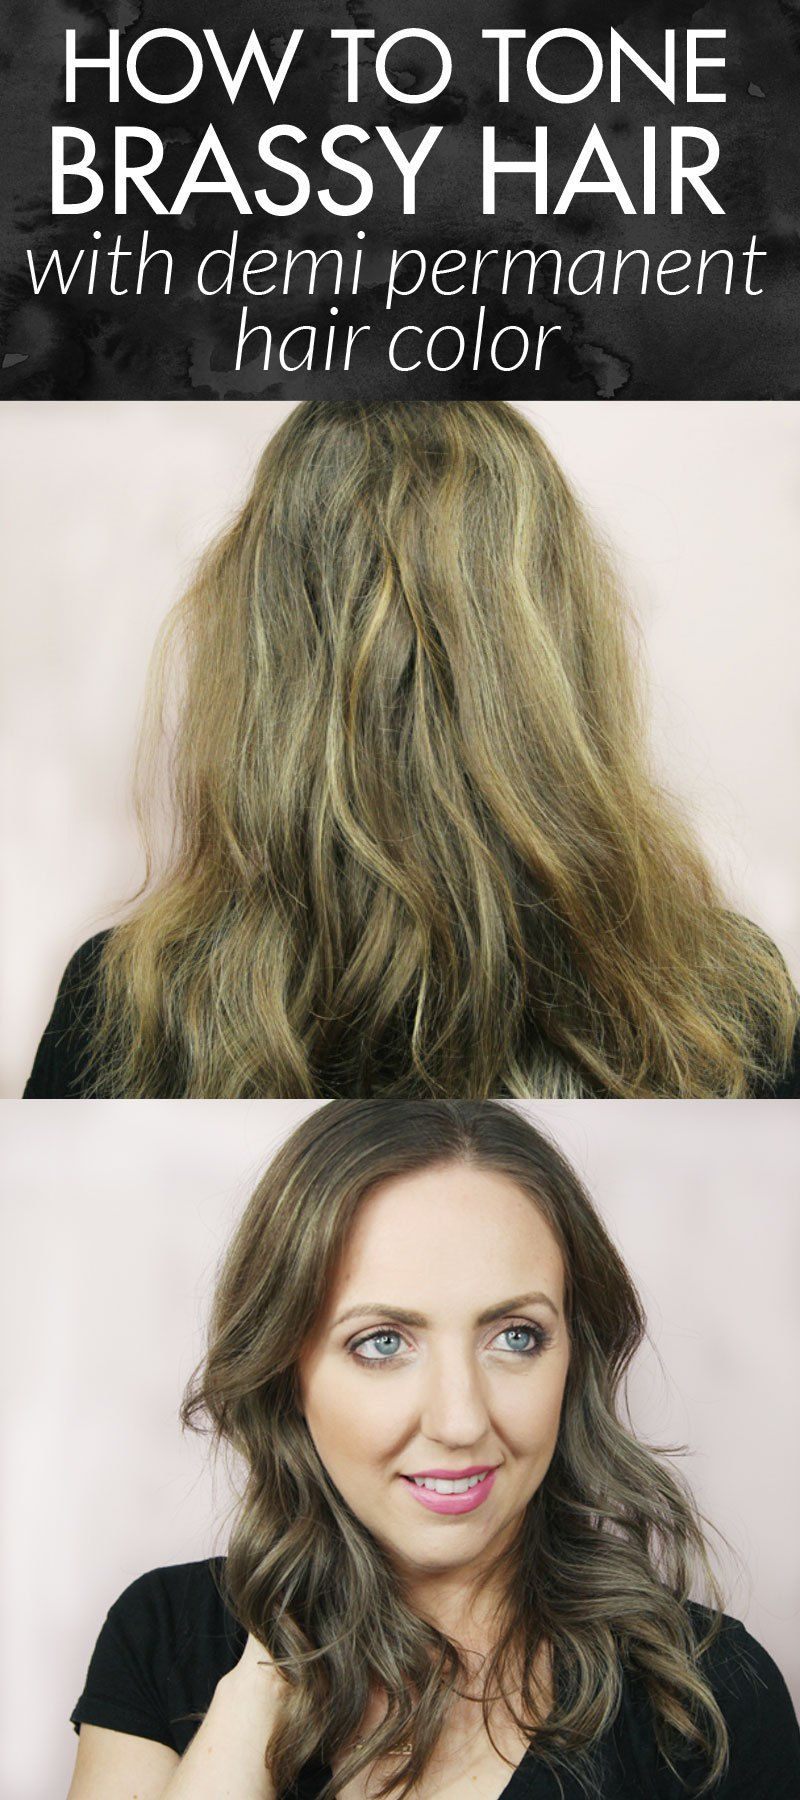 How To Tone Brassy Hair With Demi Permanent Hair Color Brassy Hair Permanent Hair Color Sally Beauty Supply Hair Color